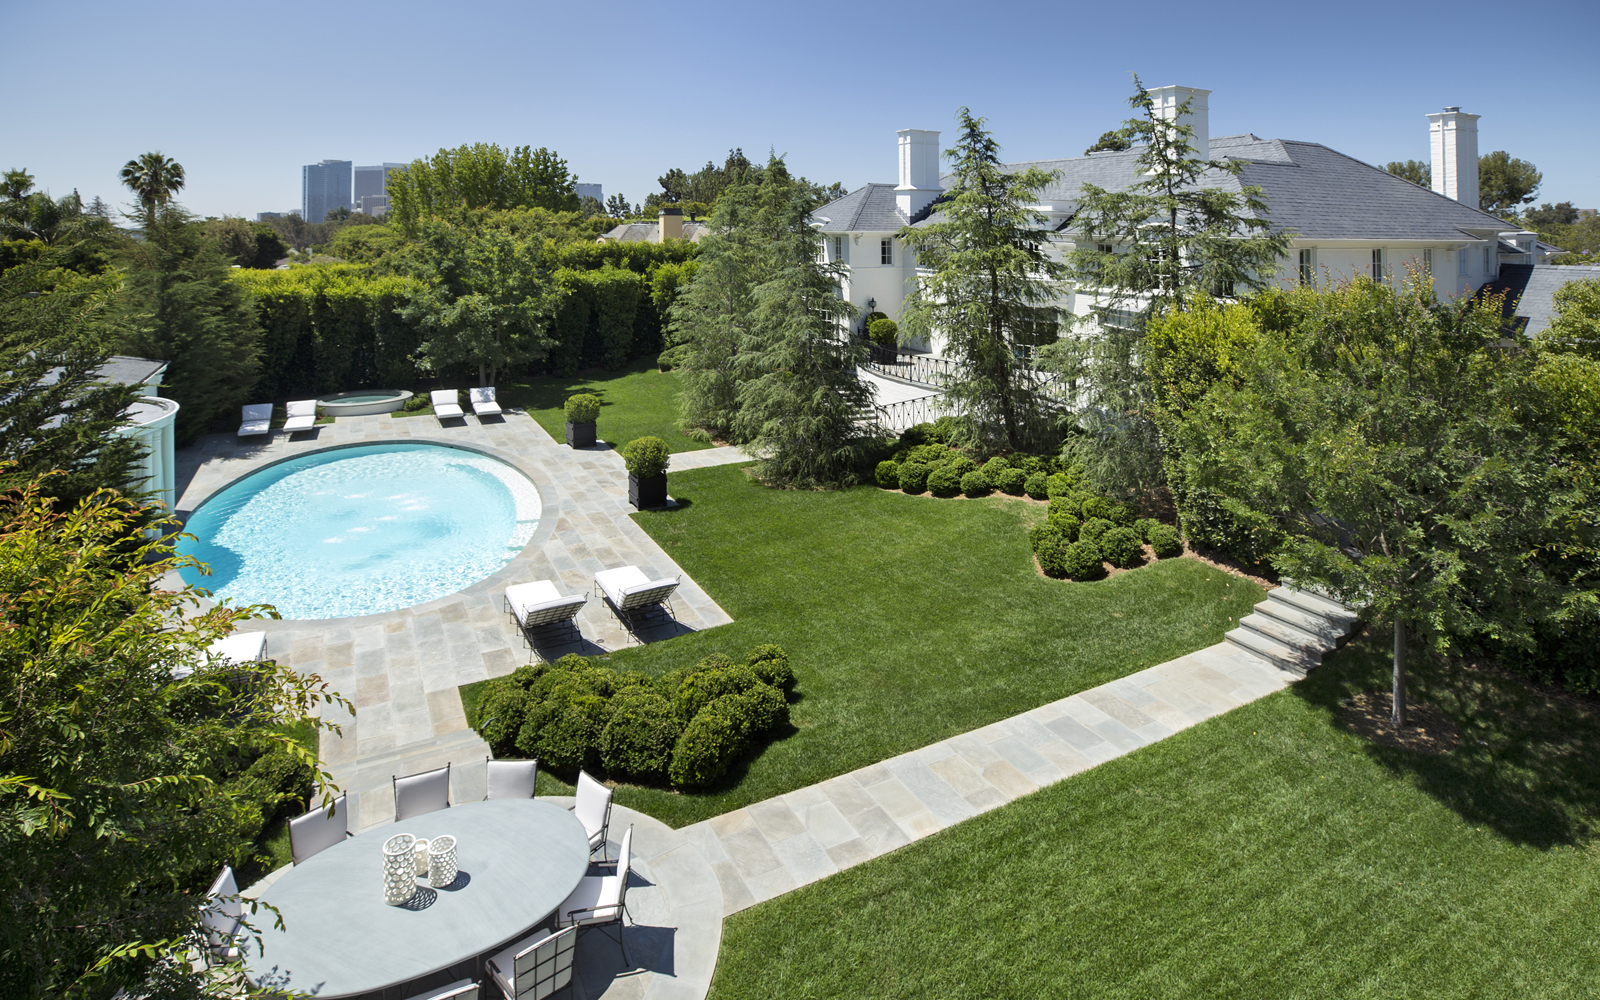 Ann rutherford mansion lists for 40 million canyon news for Rutherford house